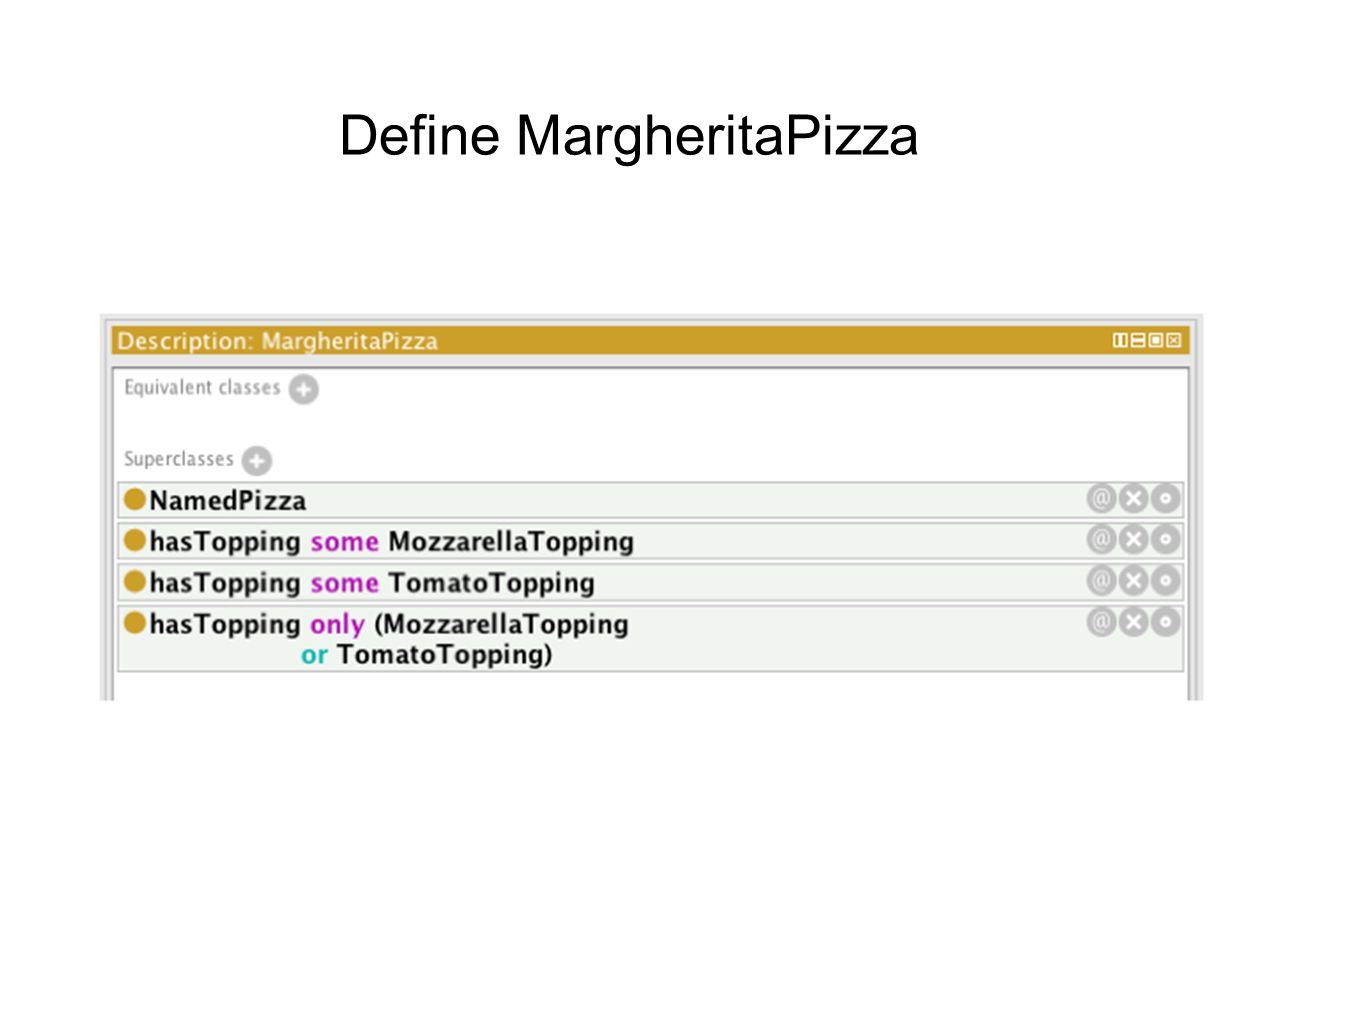 Define MargheritaPizza